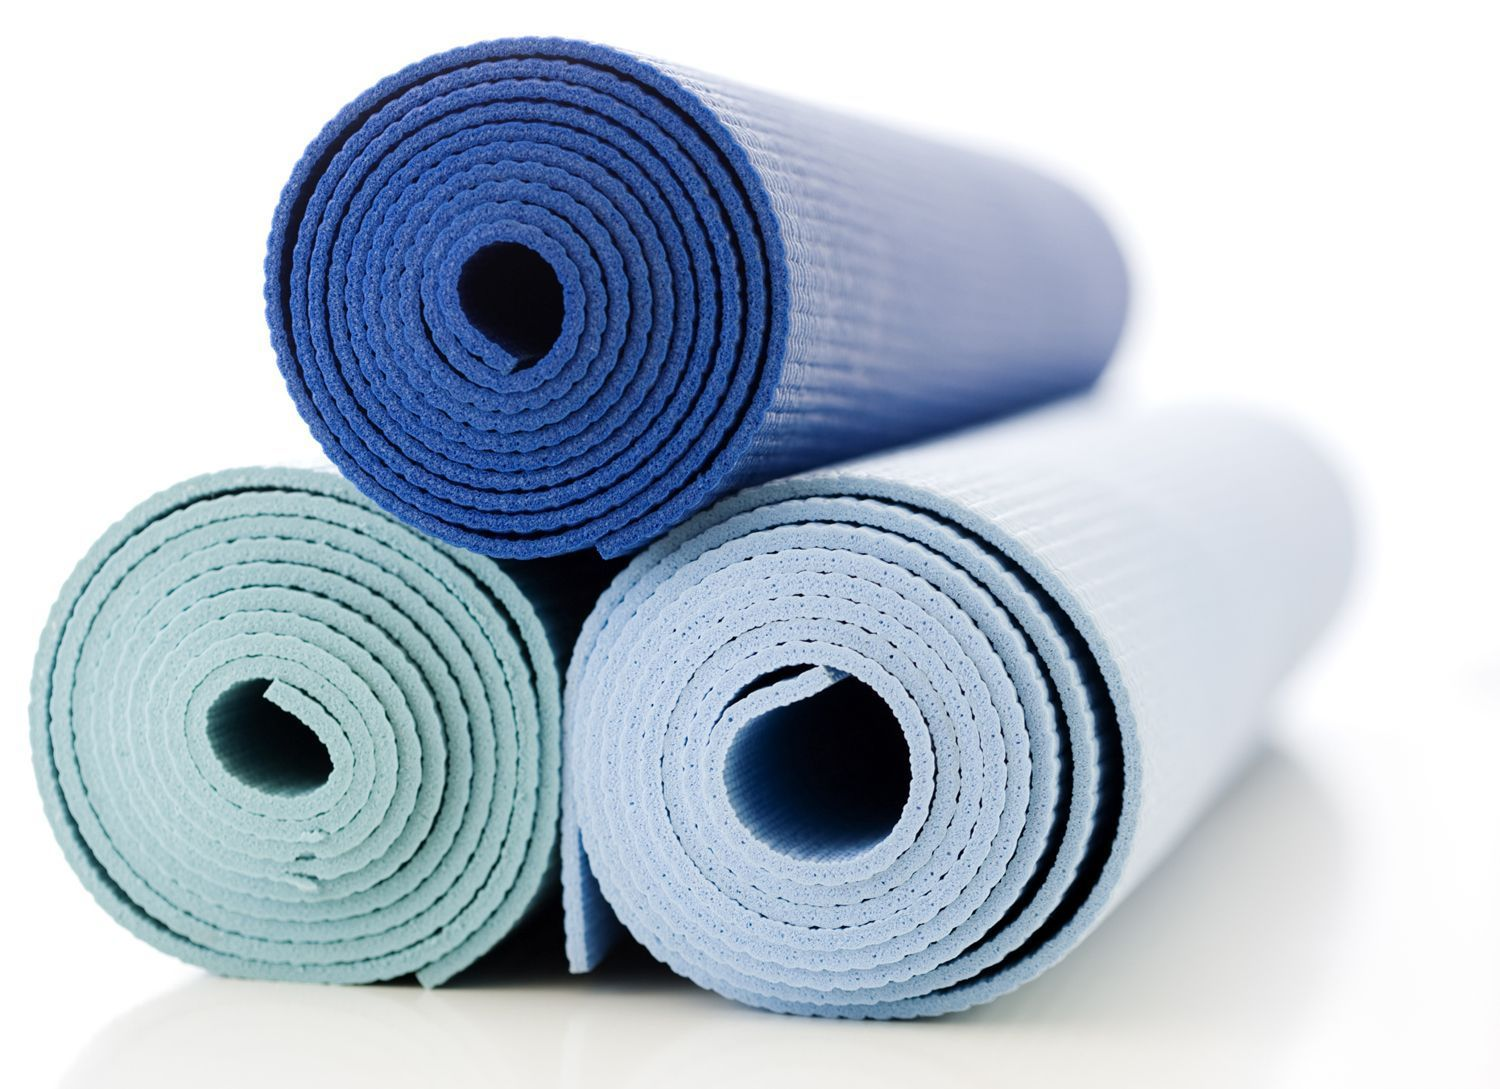 These 8 Yoga Mats Will Help Deepen Your Practice Yoga Mats Best Yoga Mat Reviews Yoga Mat